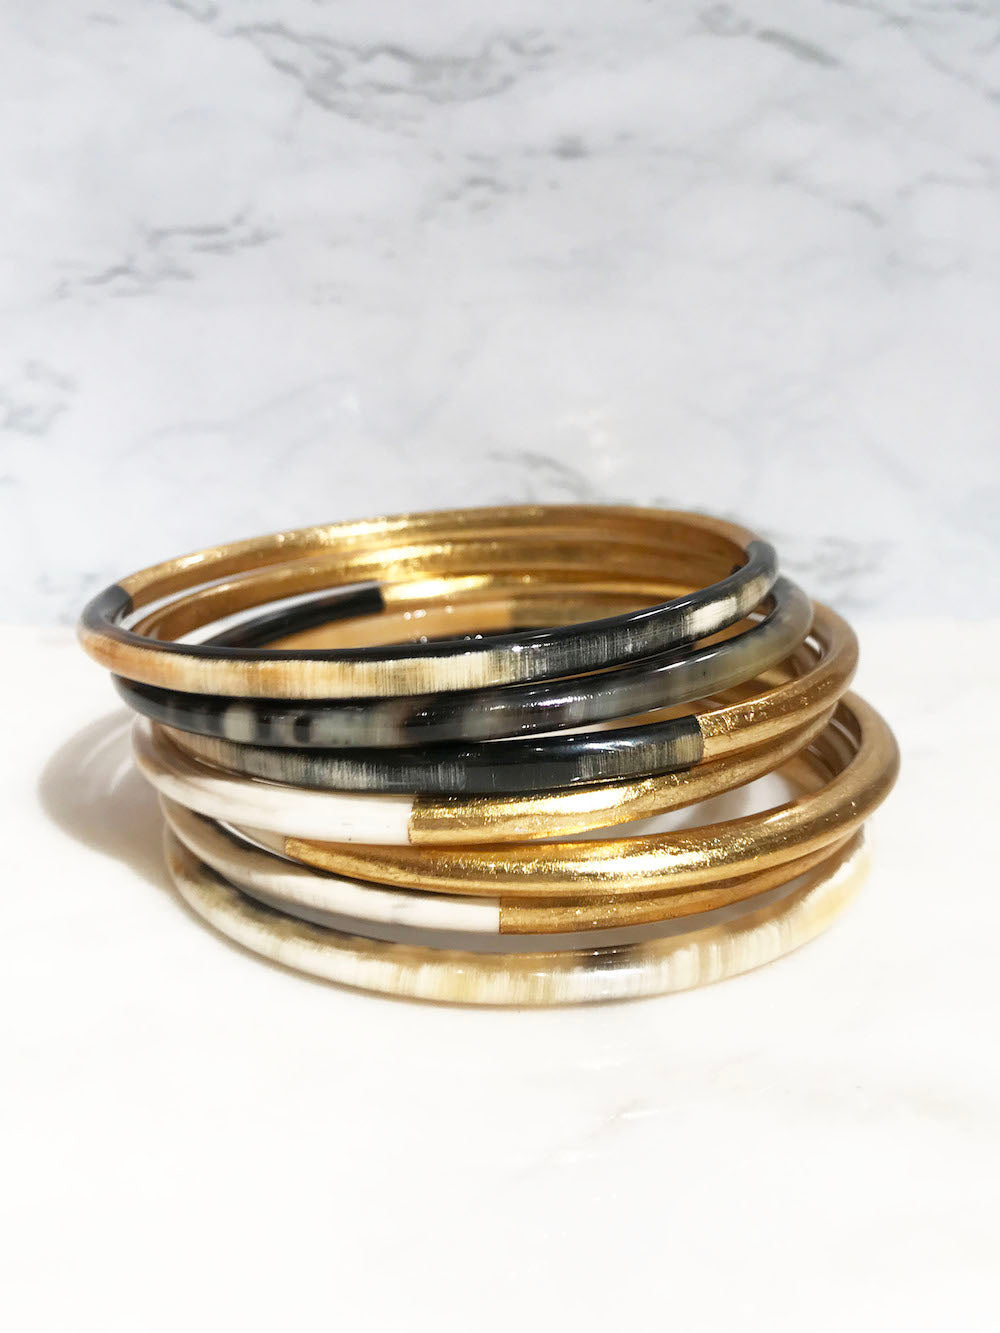 Golden buffalo horn bangle bracelet set